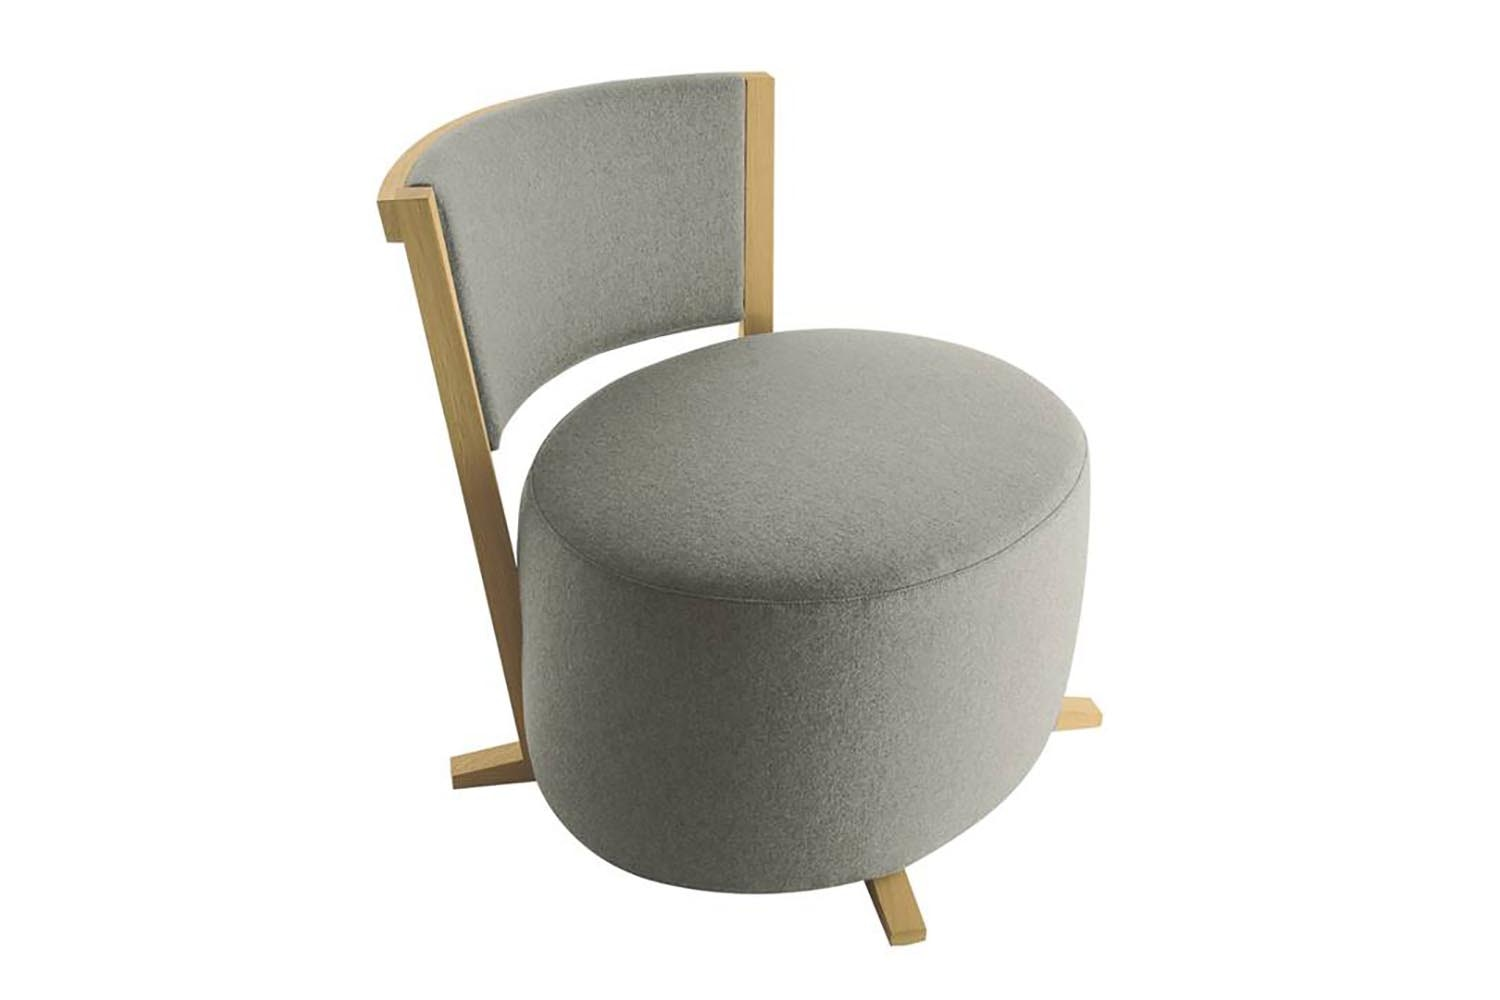 Calliope Armchair & Ottoman by Antonio Citterio for Maxalto